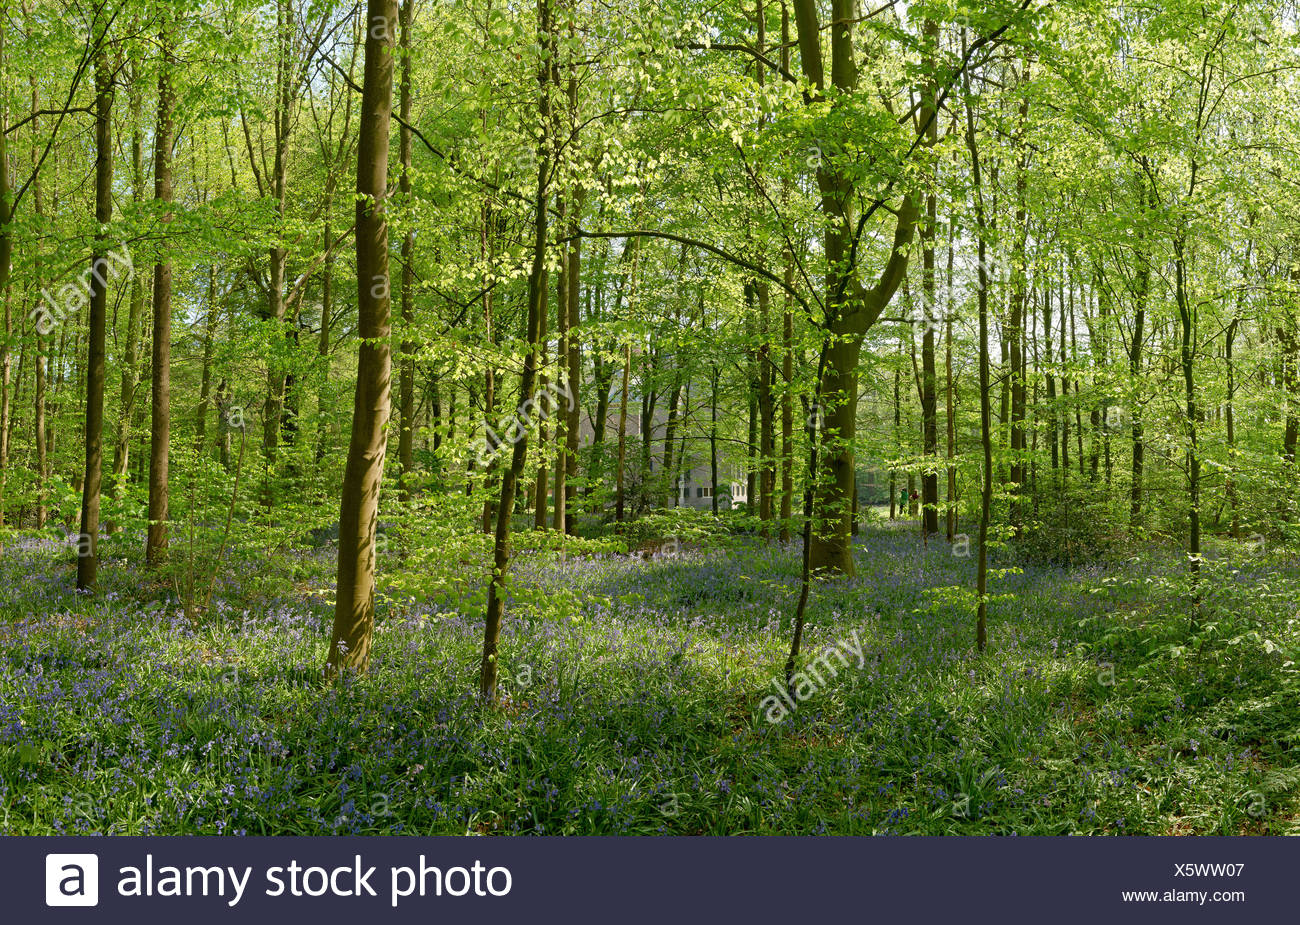 Netherlands, Holland, Europe, Oegstgeest, Blue-bells, park, Oud Poelgeest, landscape, flowers, trees, spring, forest - Stock Image